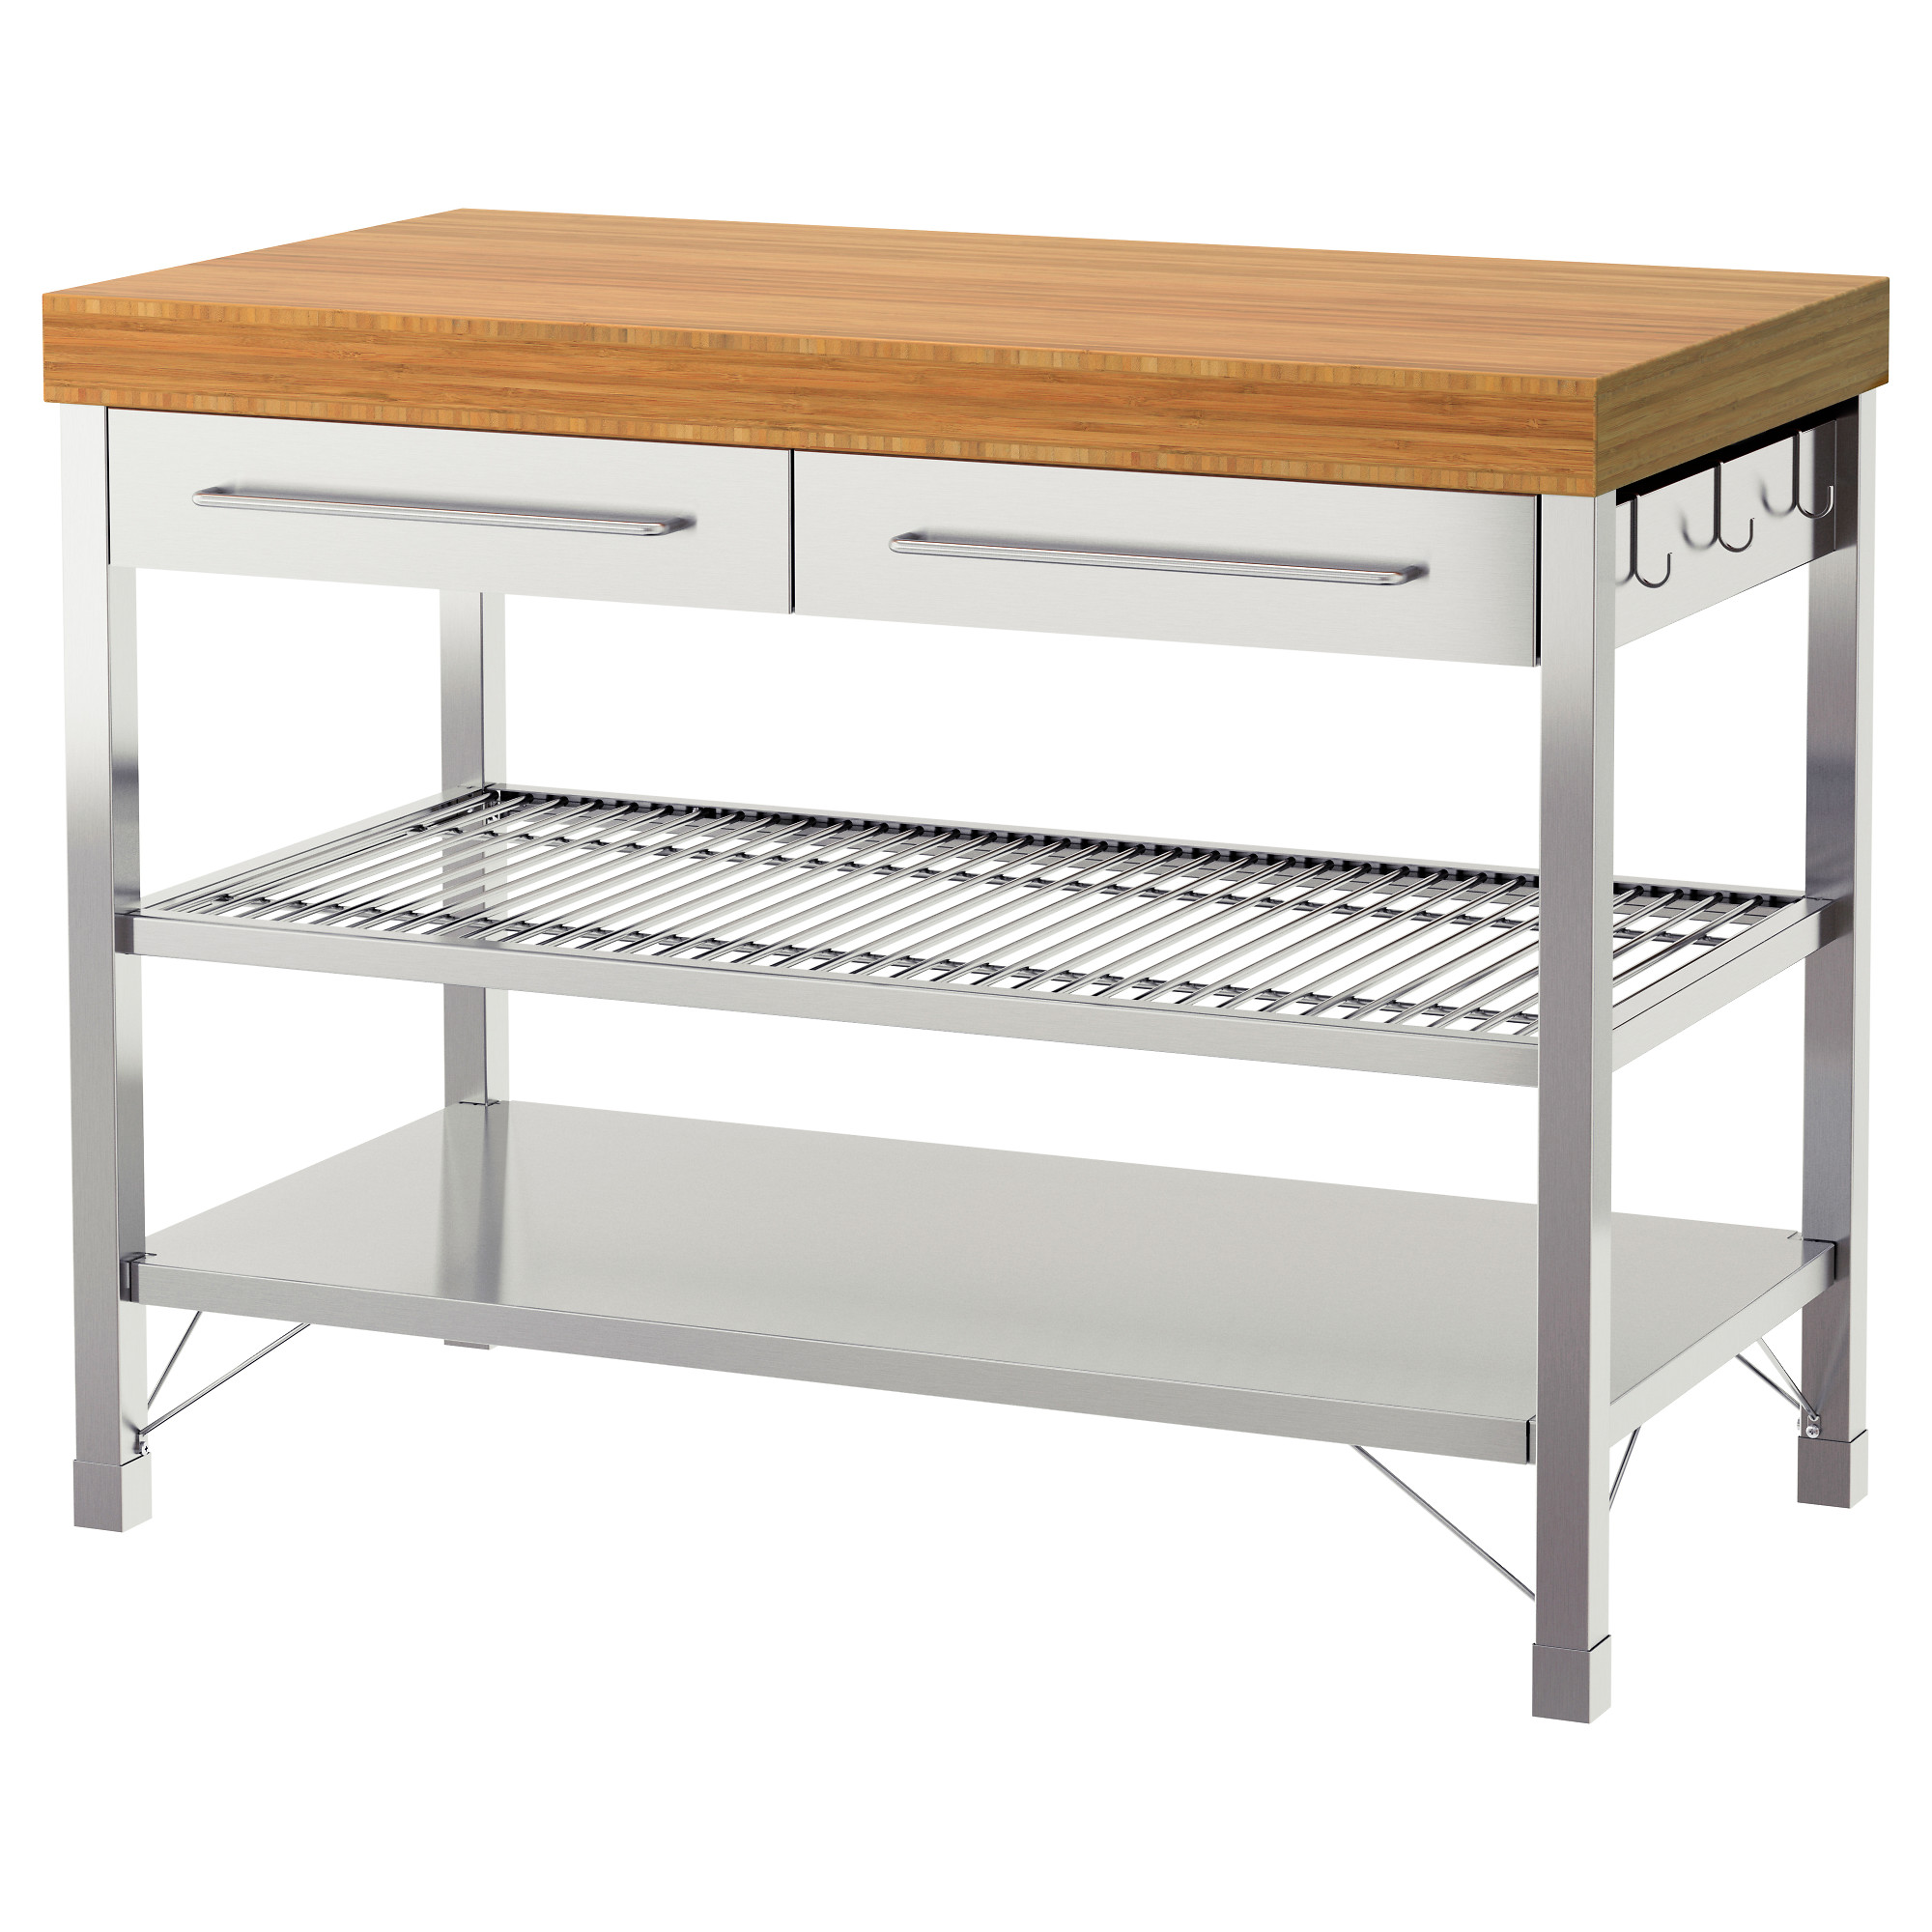 Metal Workbench | Home Depot Workbenches | Workbench Prices